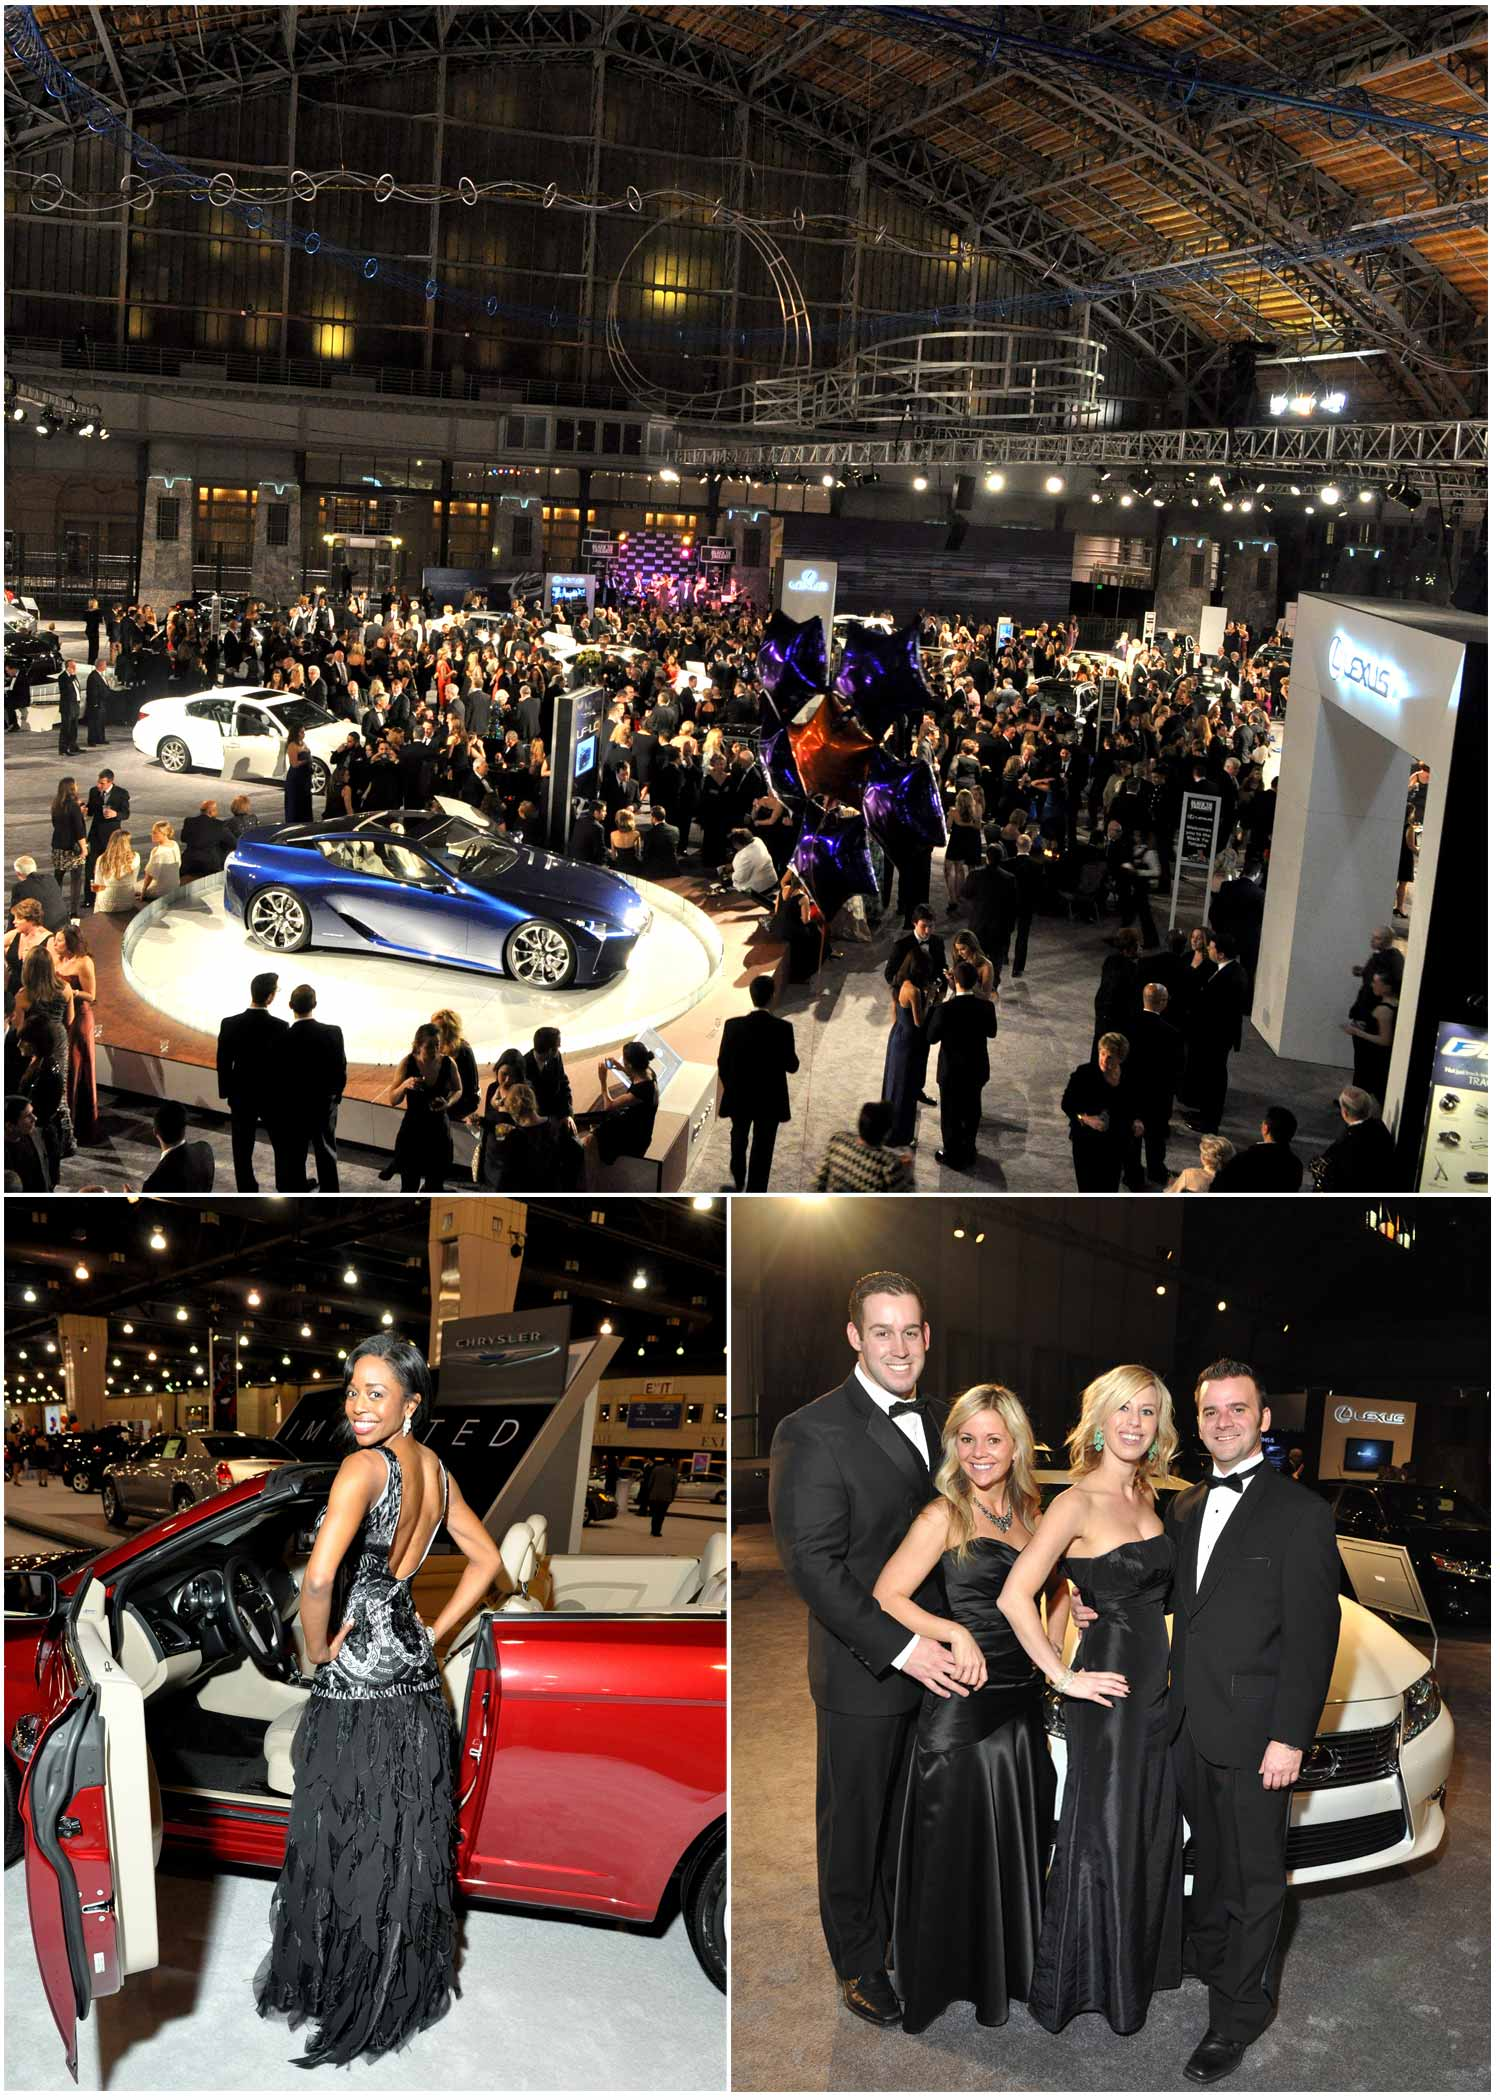 Jan Philadelphia Black Tie Auto Show Al B Fors Weblog - Black tie event philadelphia car show